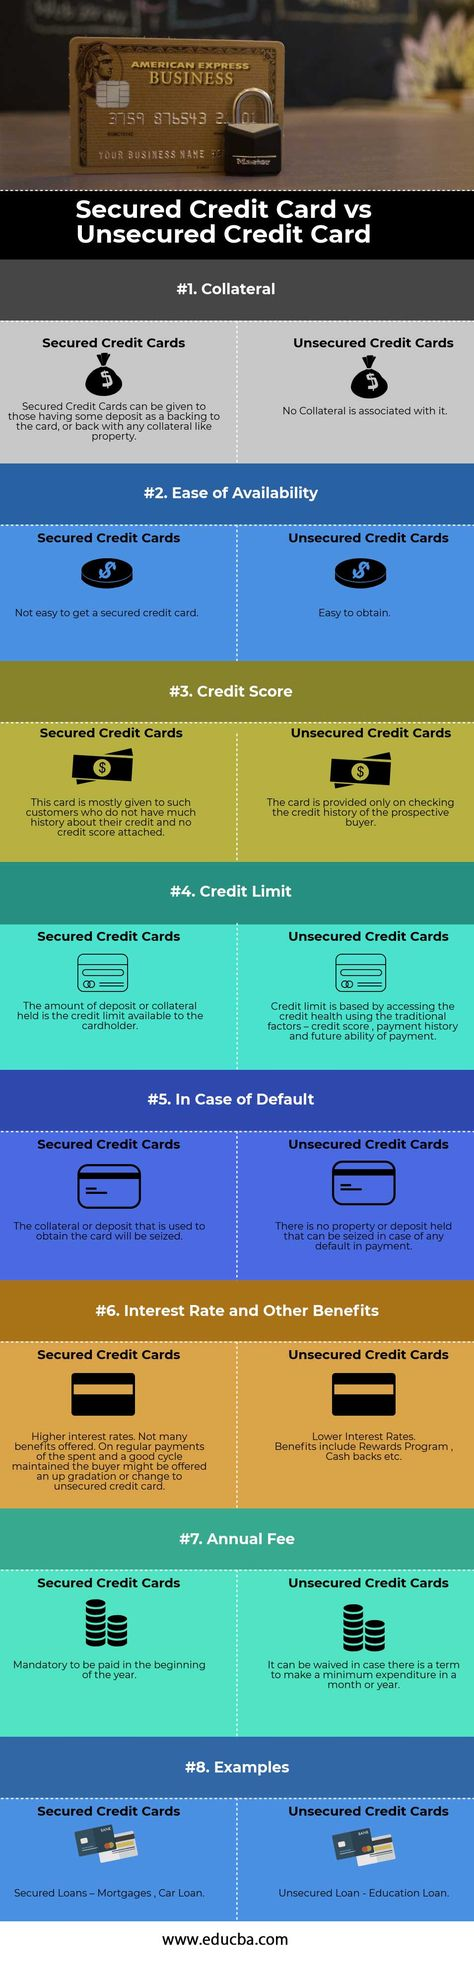 Secured vs Unsecured Credit Card | Top 8 Differences (With Infographics)